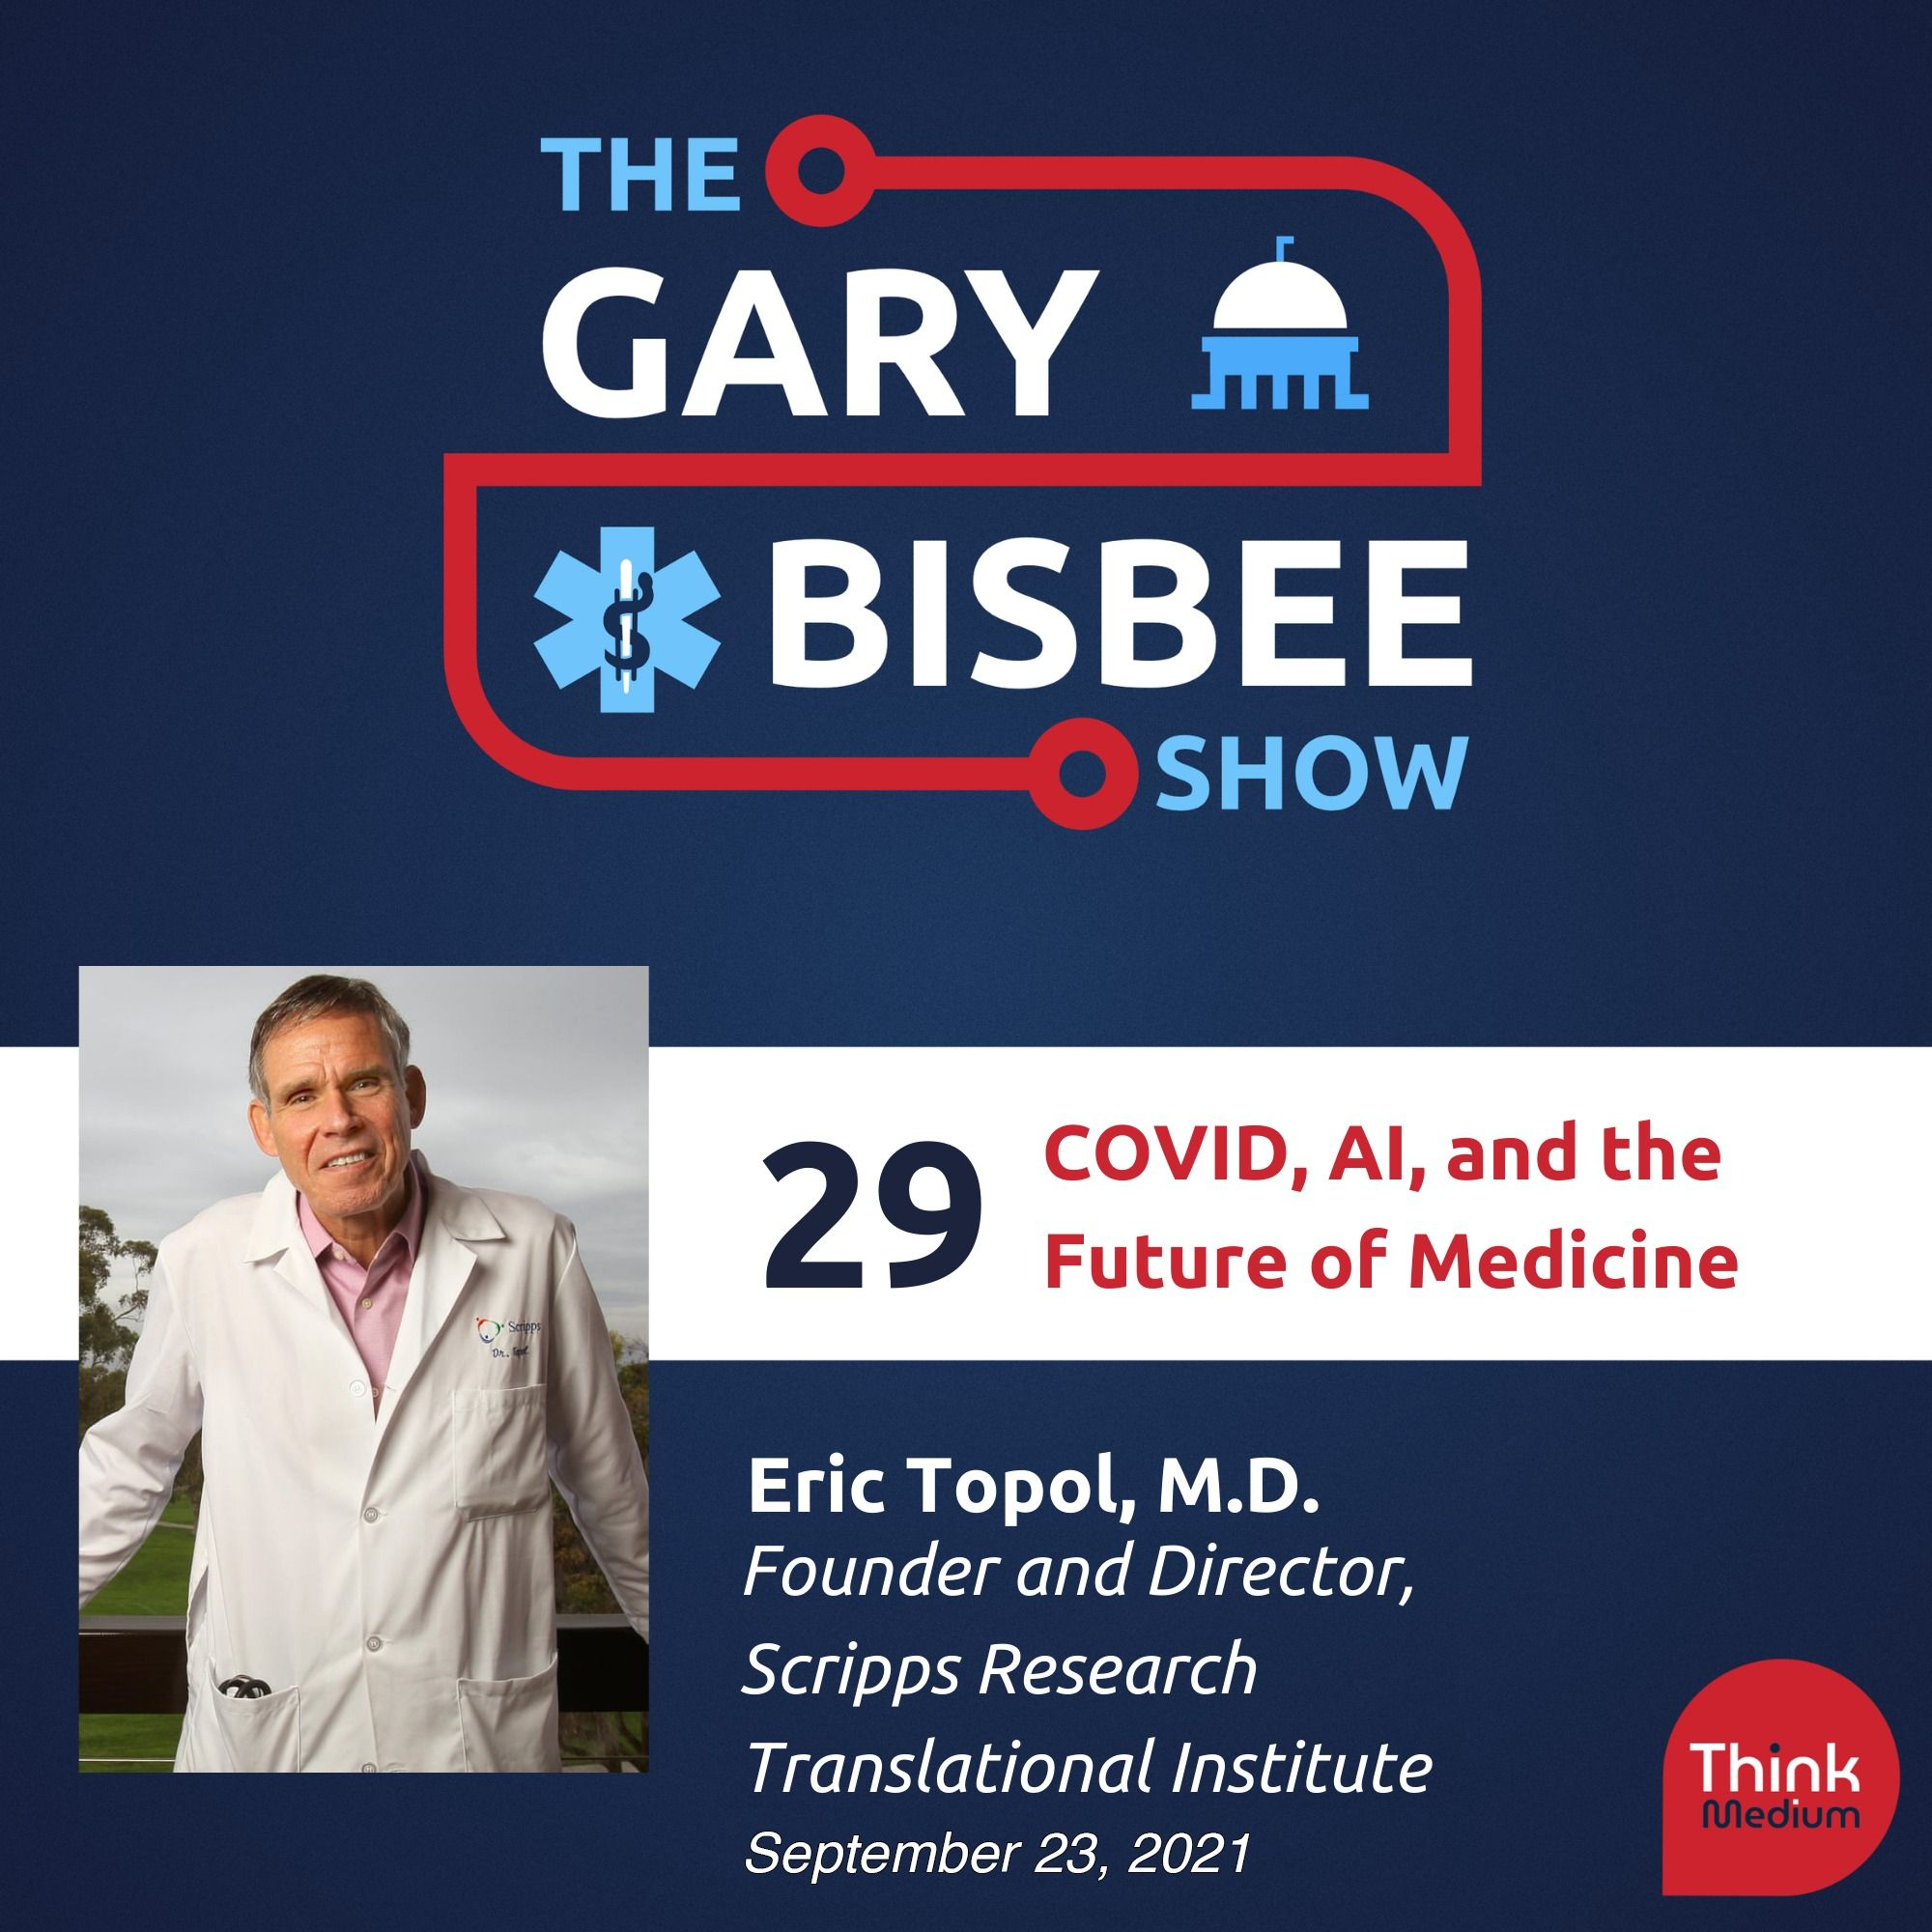 29: COVID, AI, and the Future of Medicine with Eric Topol, M.D., Founder & Director, Scripps Research Translational Institute